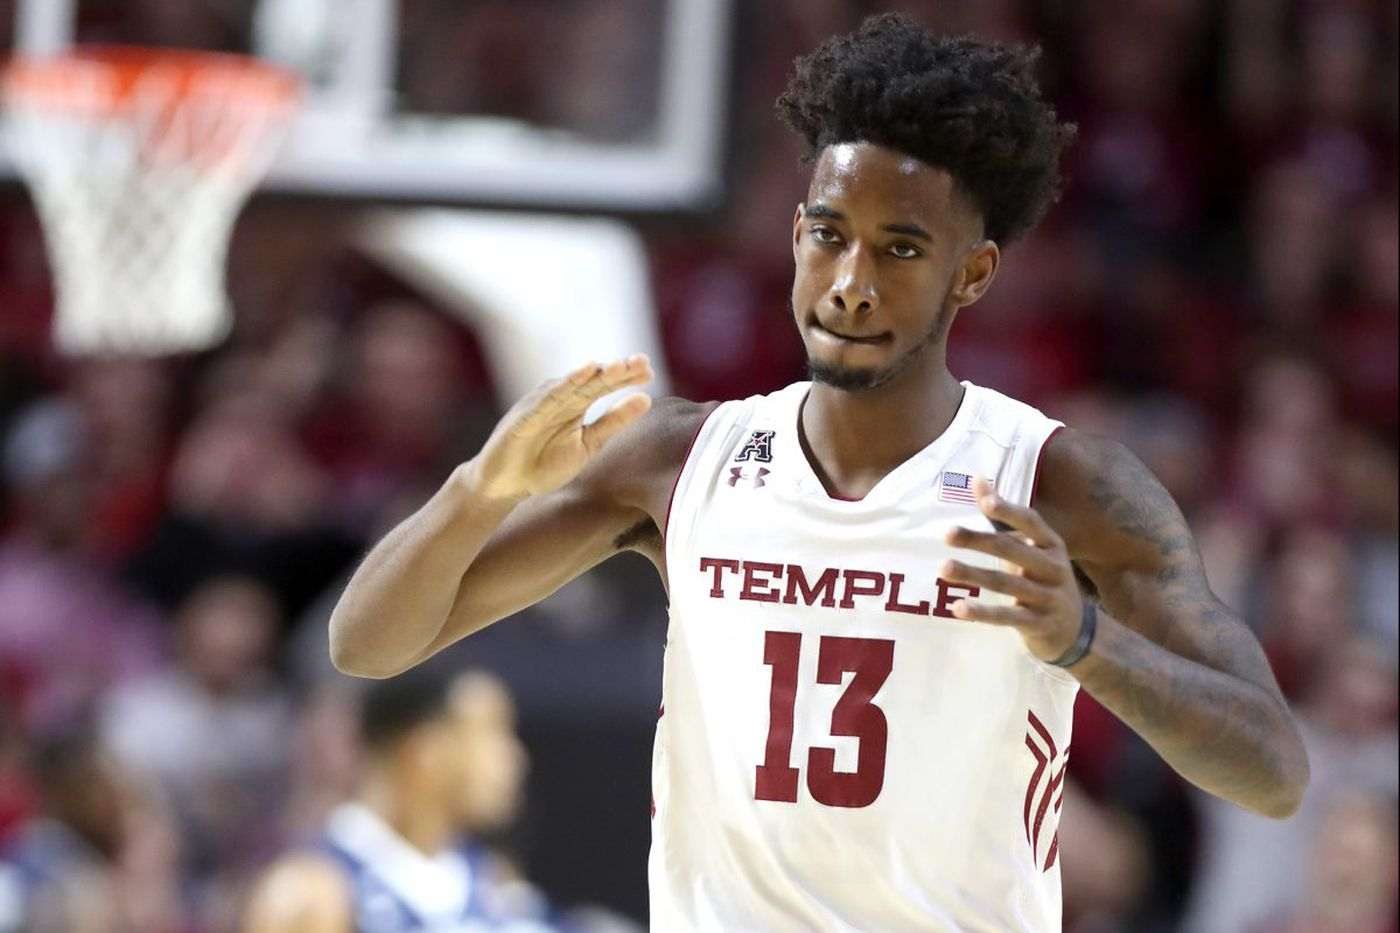 Quinton Rose withdraws name from NBA draft and will return to Temple